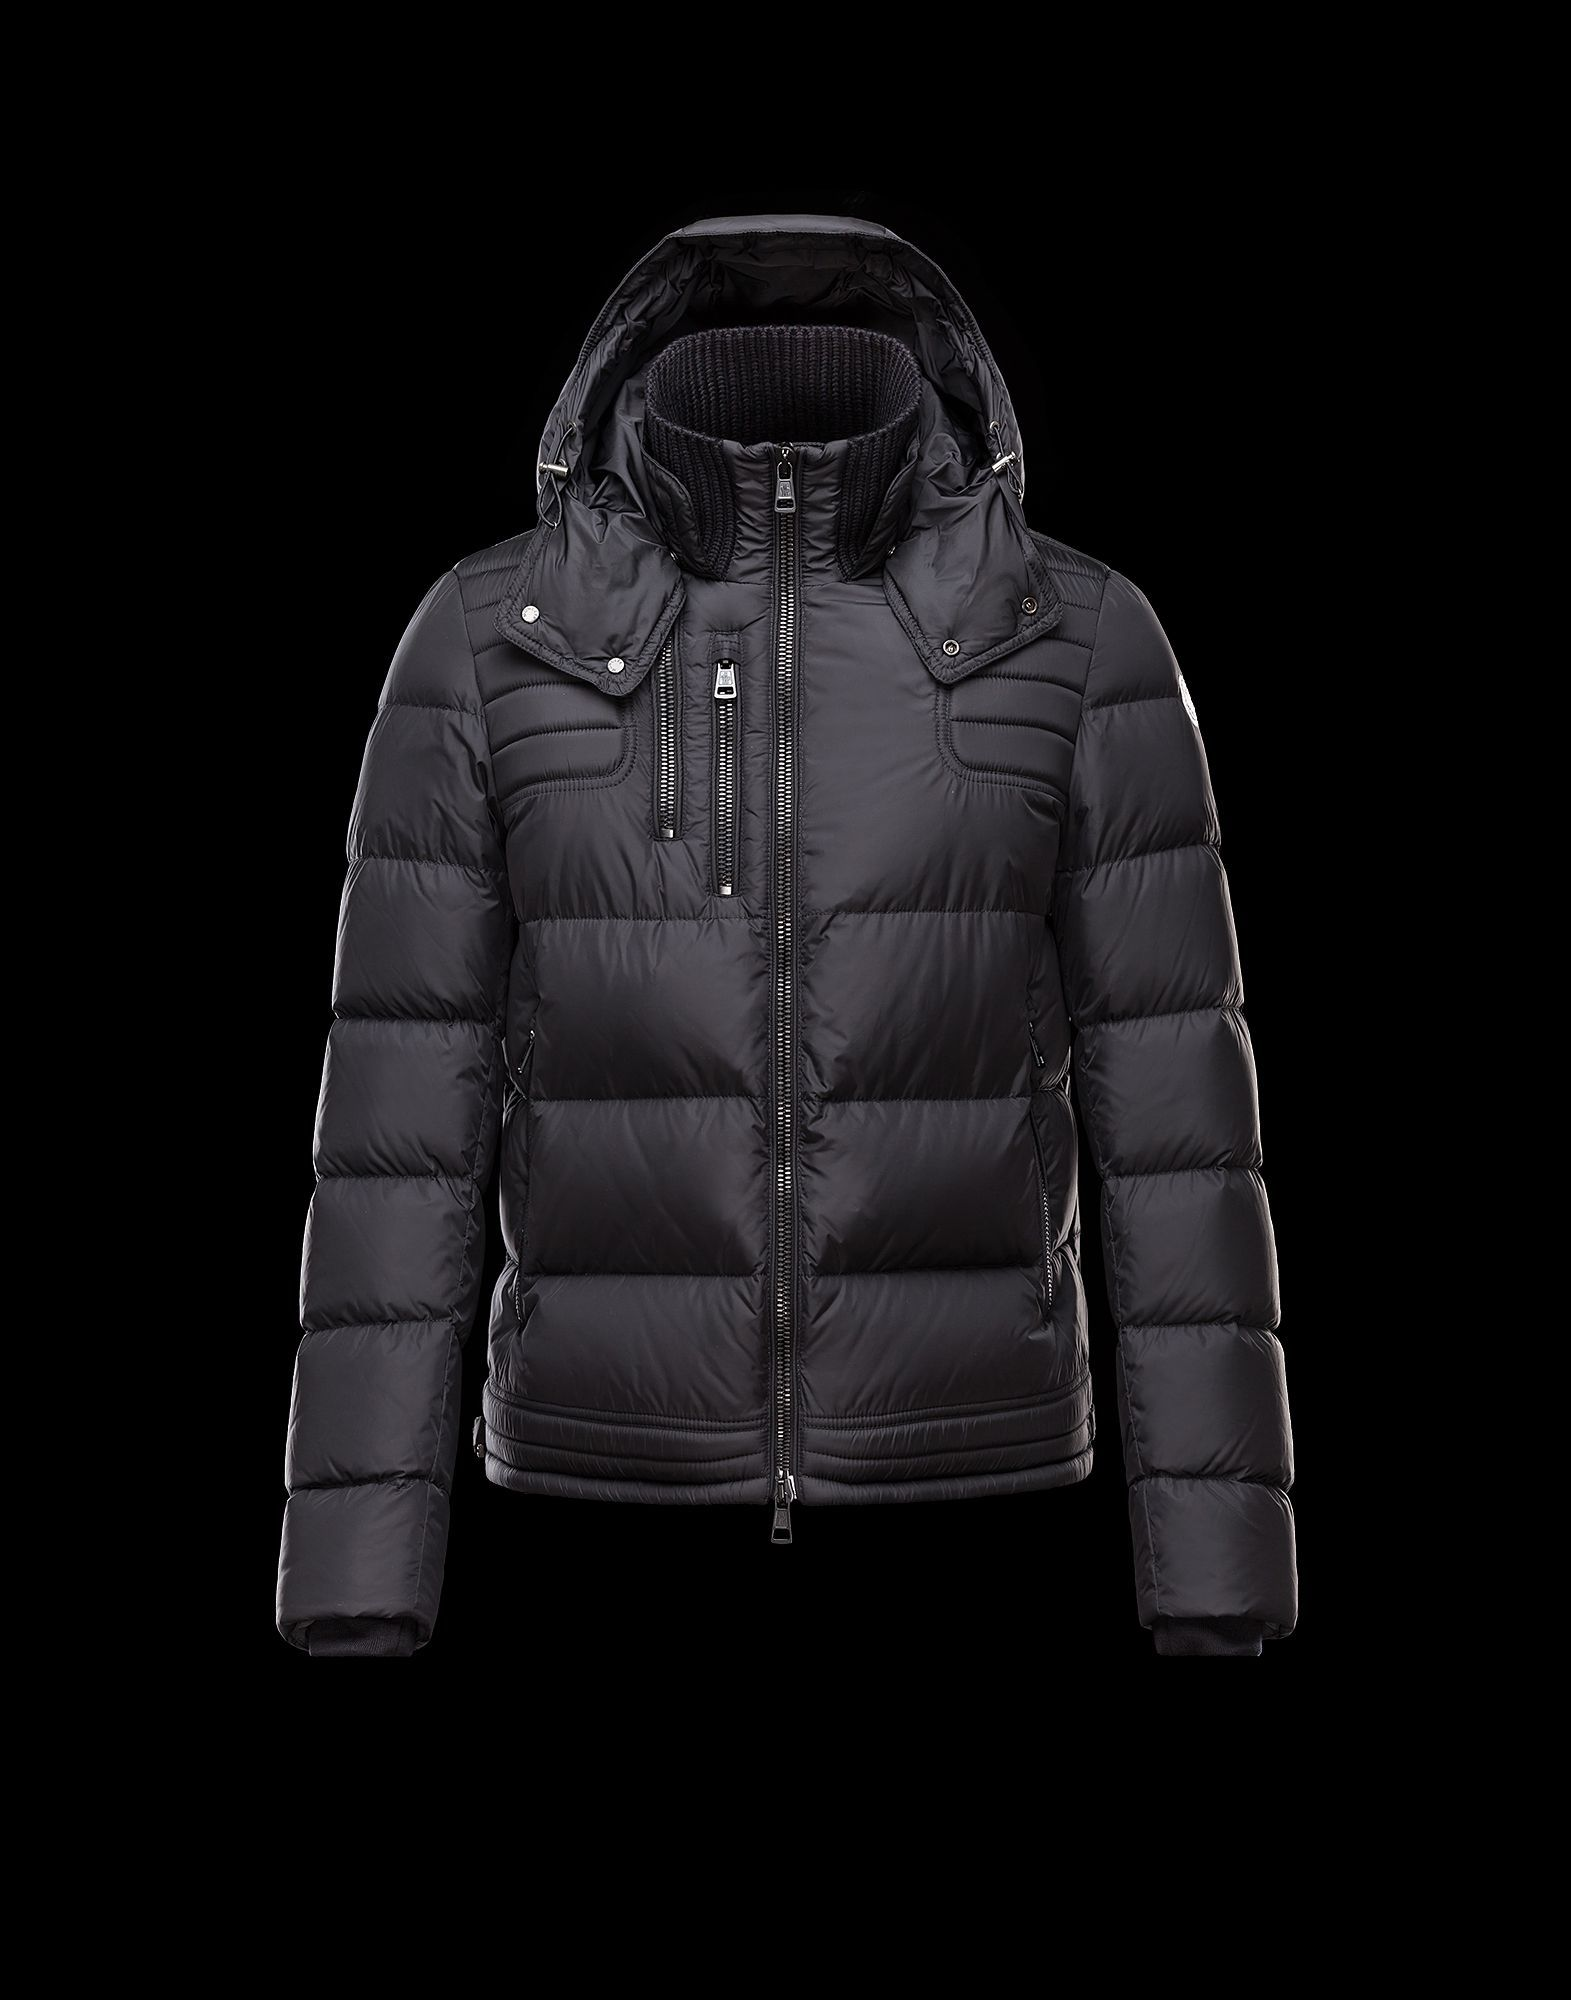 Moncler Ropa granate